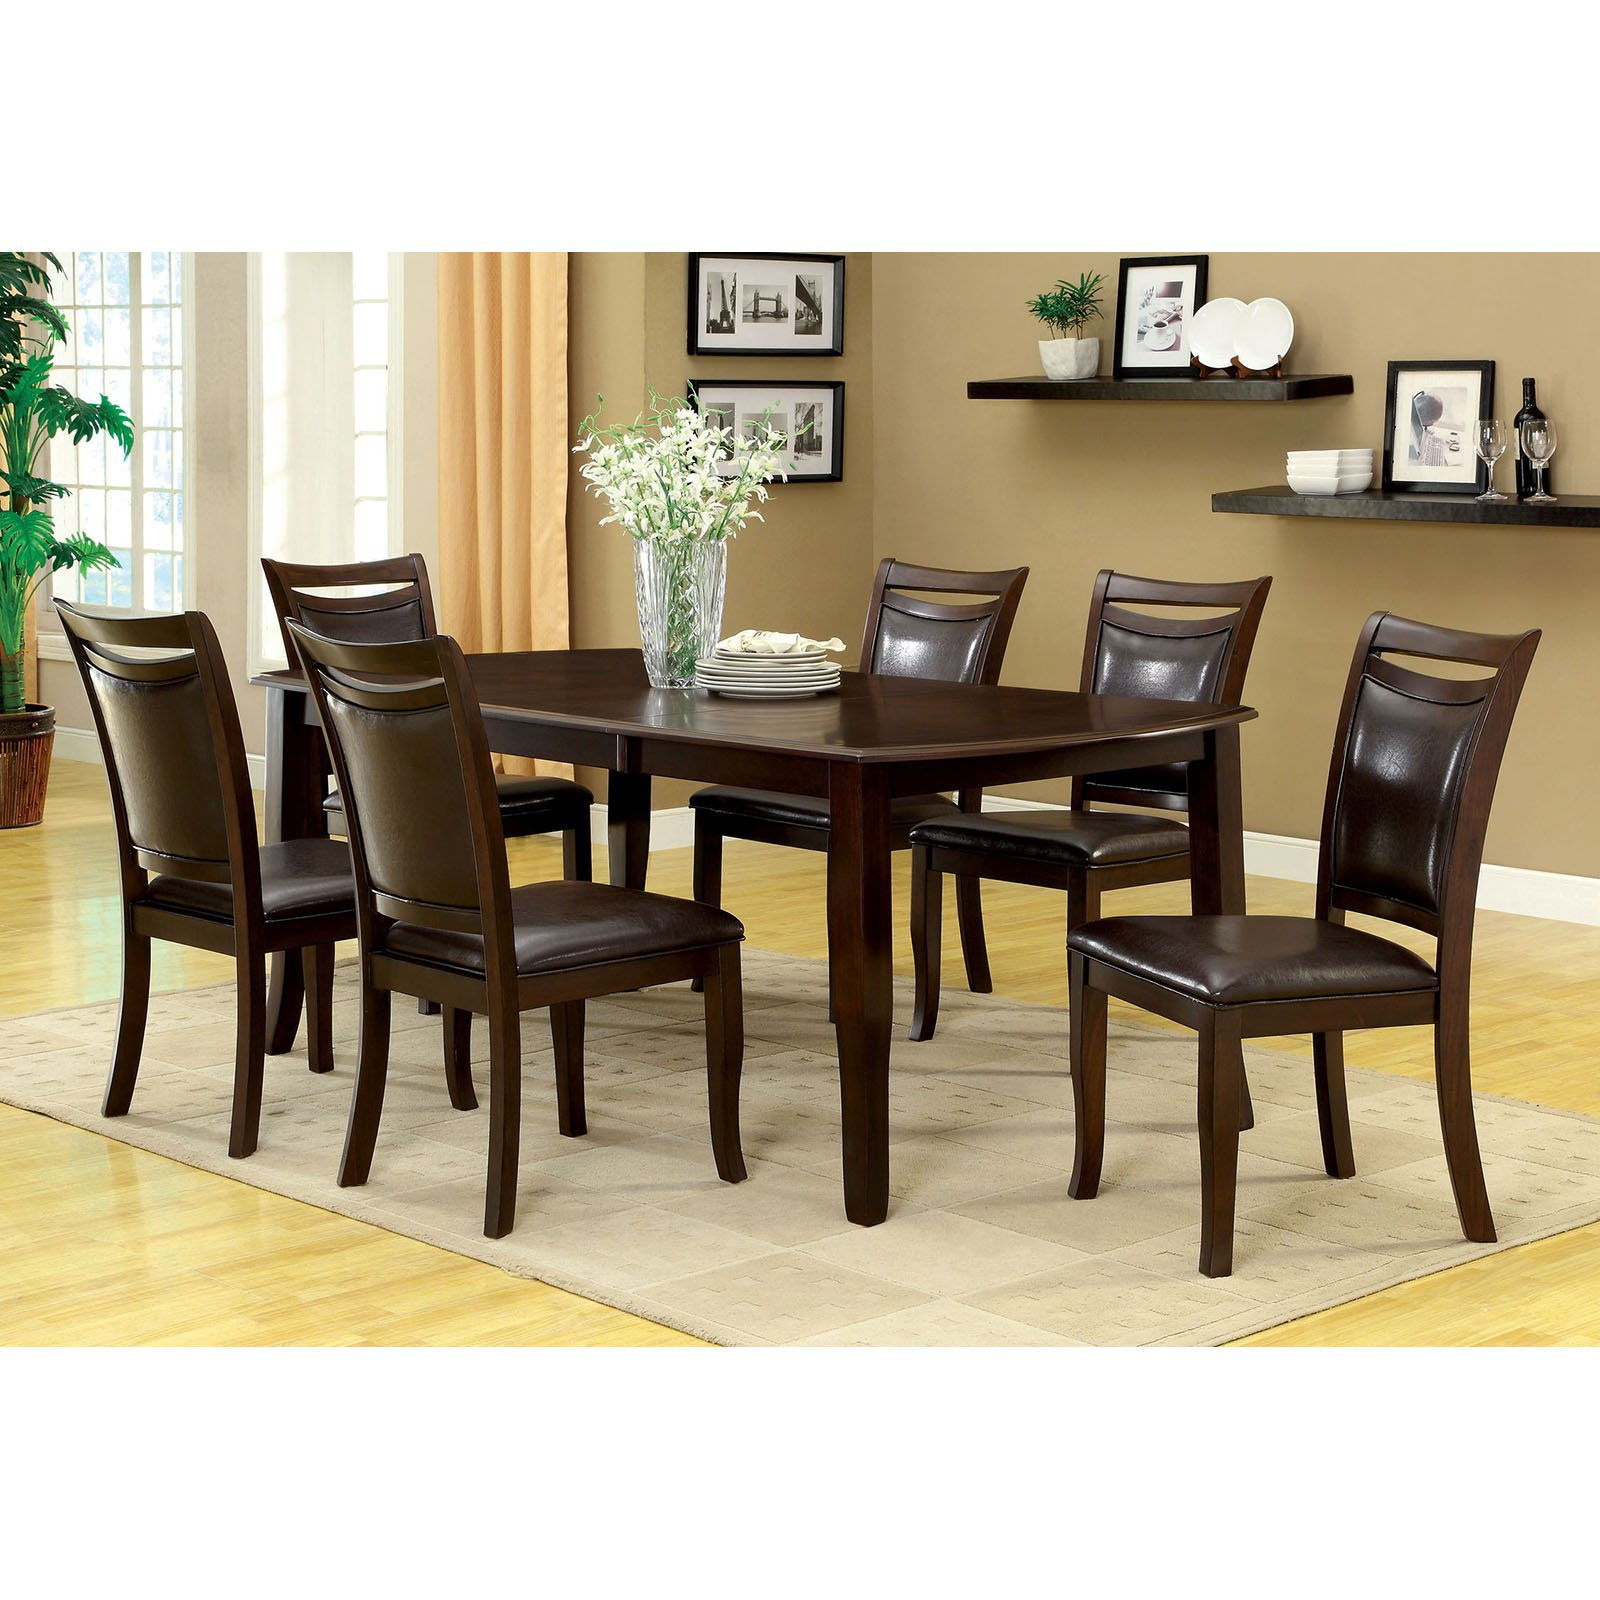 Dining room 7 piece sets creative idea 7 piece black for Black n white dining rooms